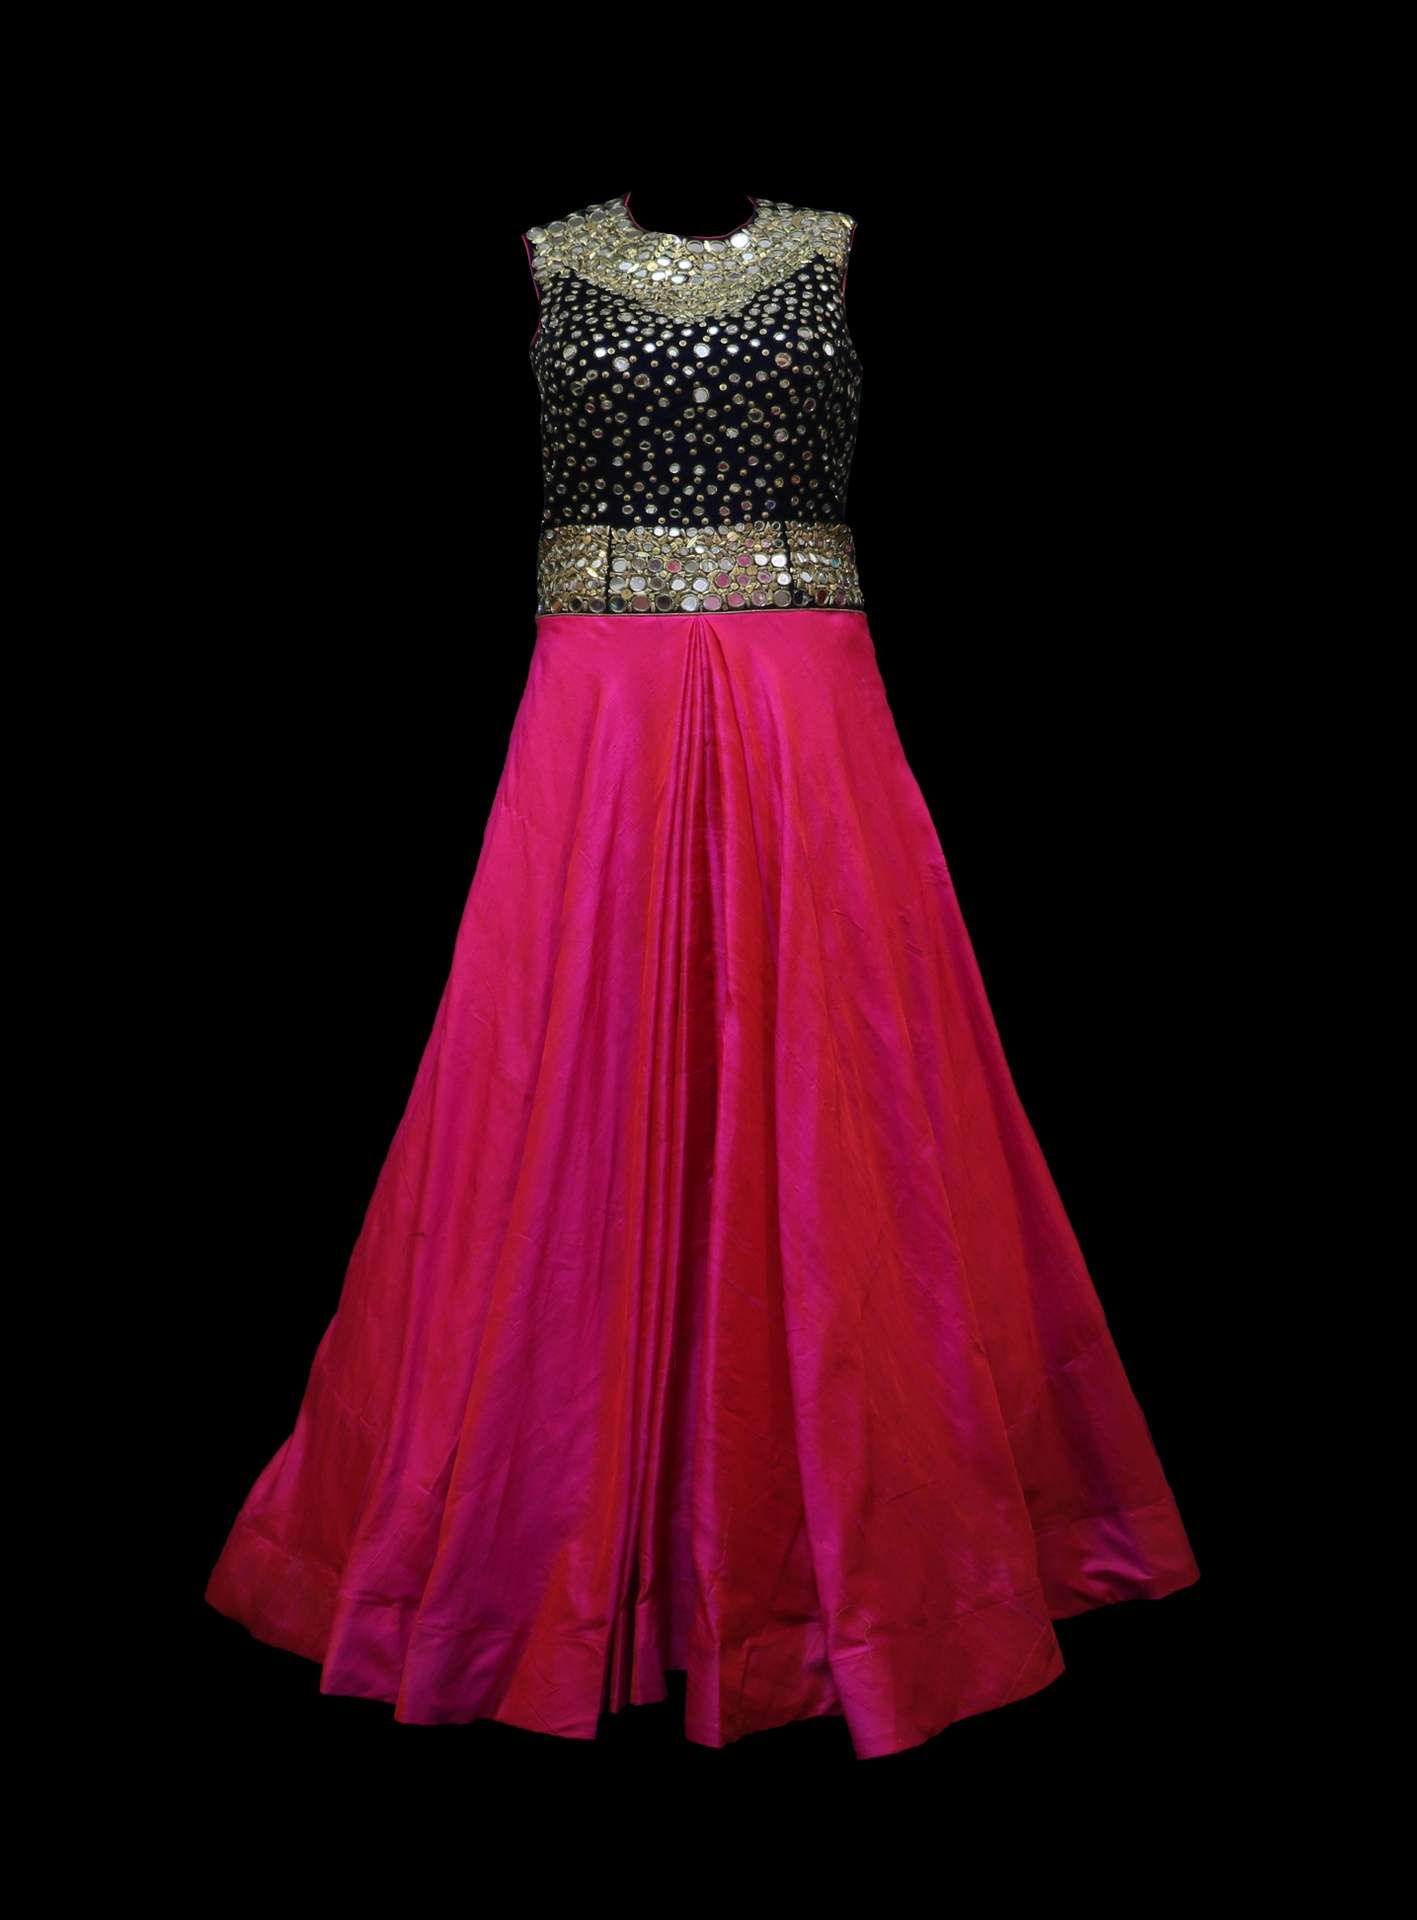 wedding dress for rent Wedding Dress Party Wear Clothes on Rent in India